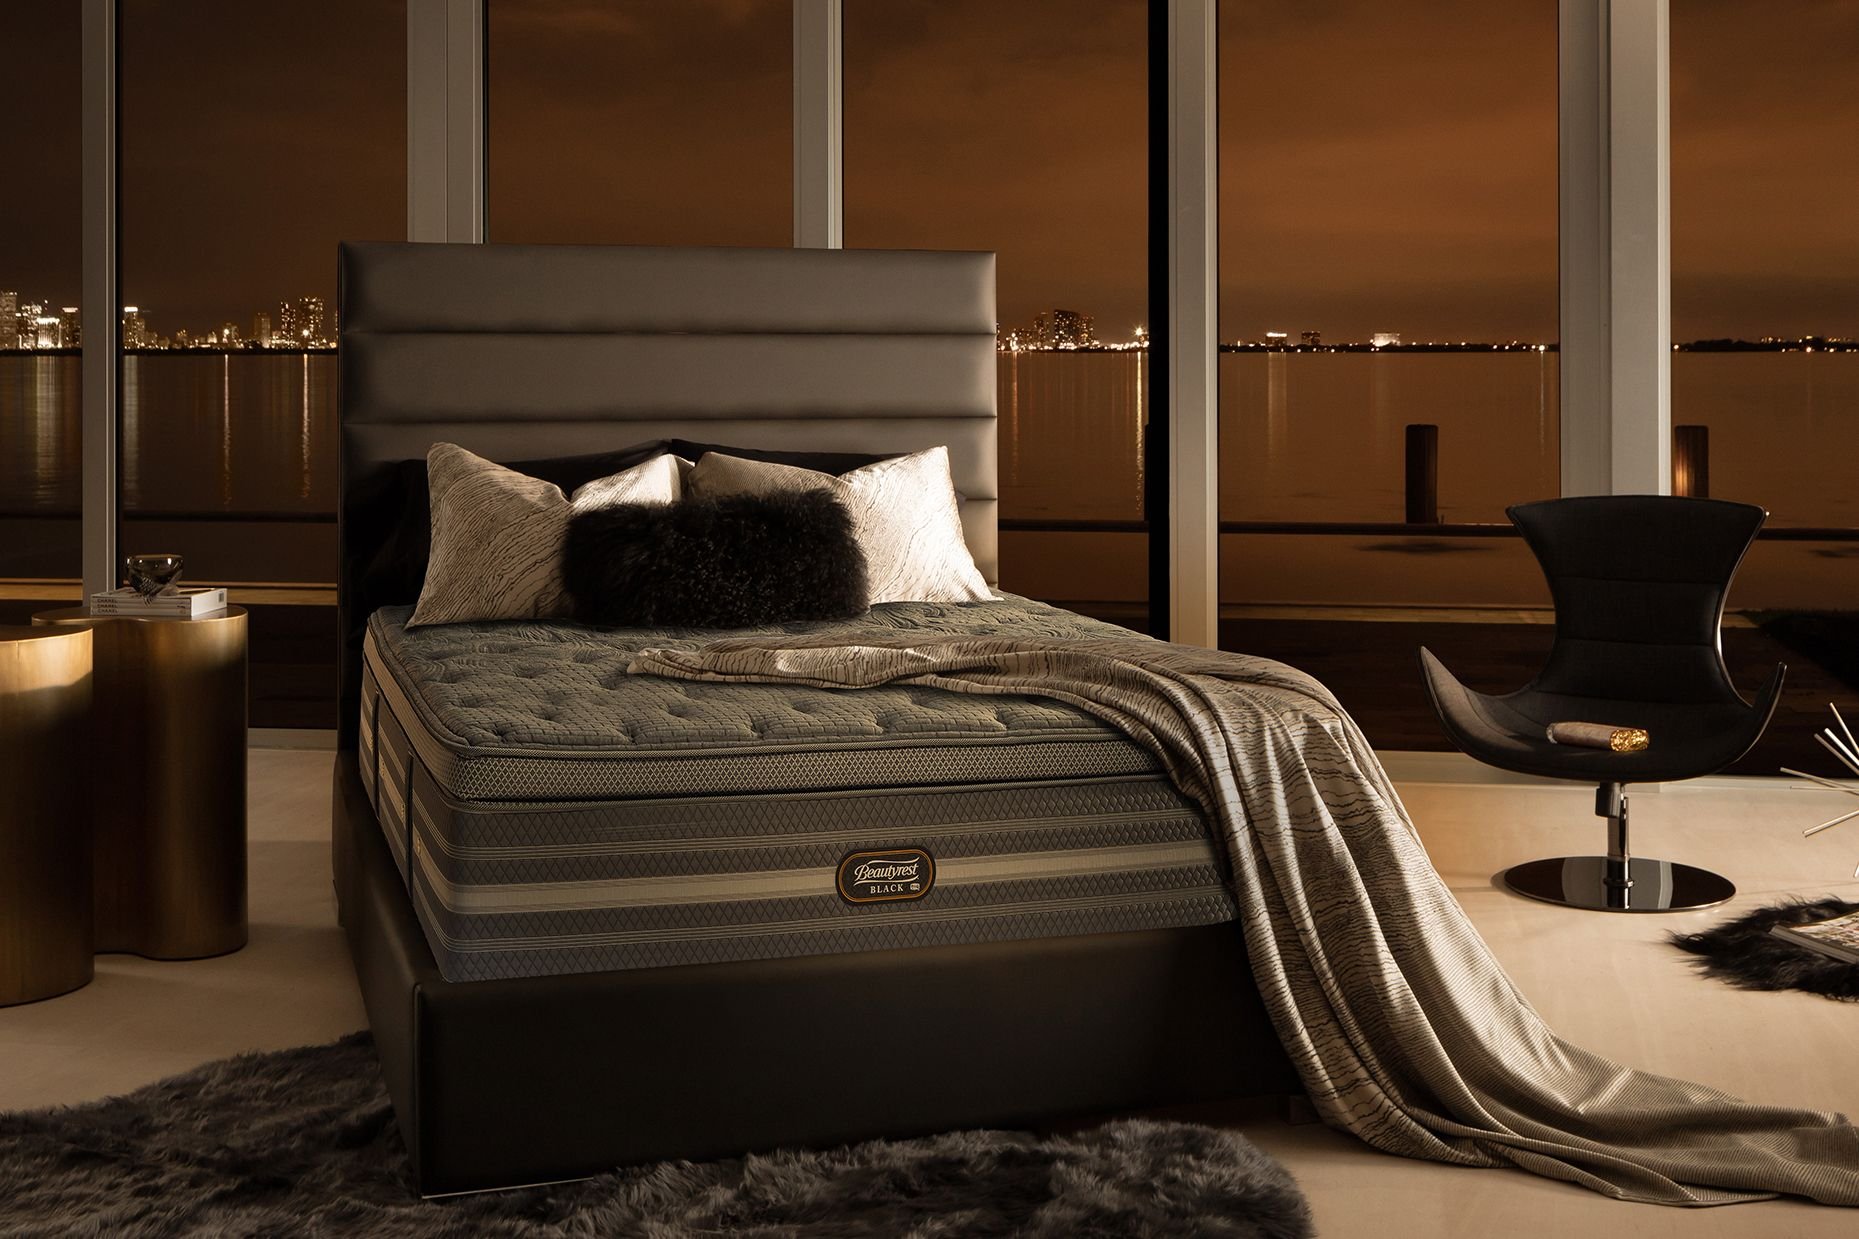 This Luxury Mattress Has A Diamond-Infused Layer That Gives You Better Sleep